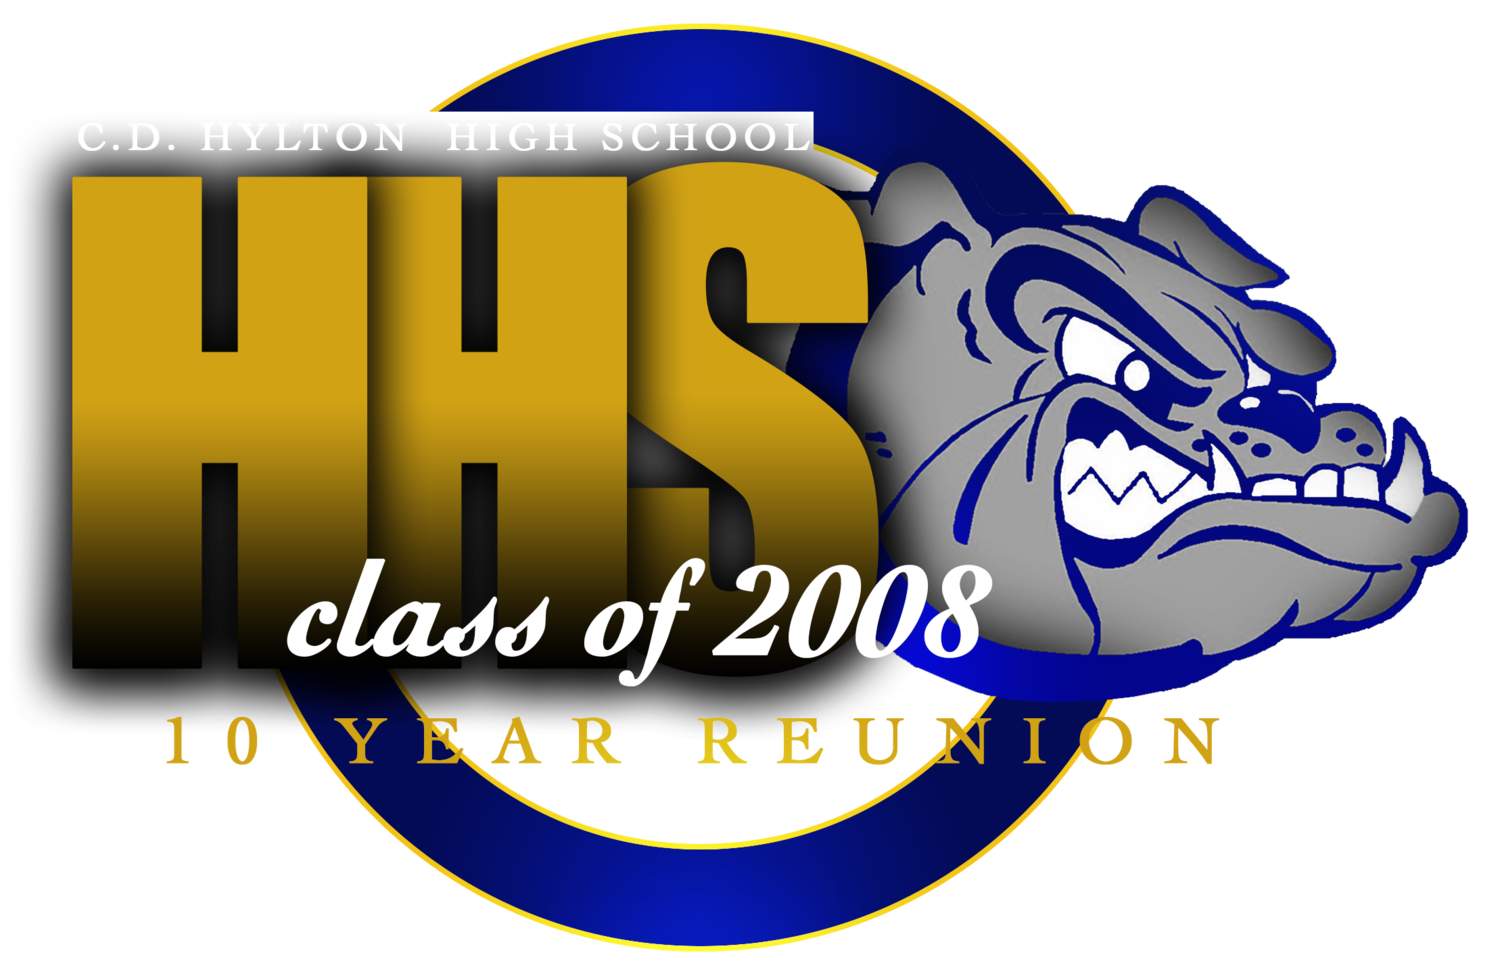 Hhs class of reunion. Yearbook clipart making memory